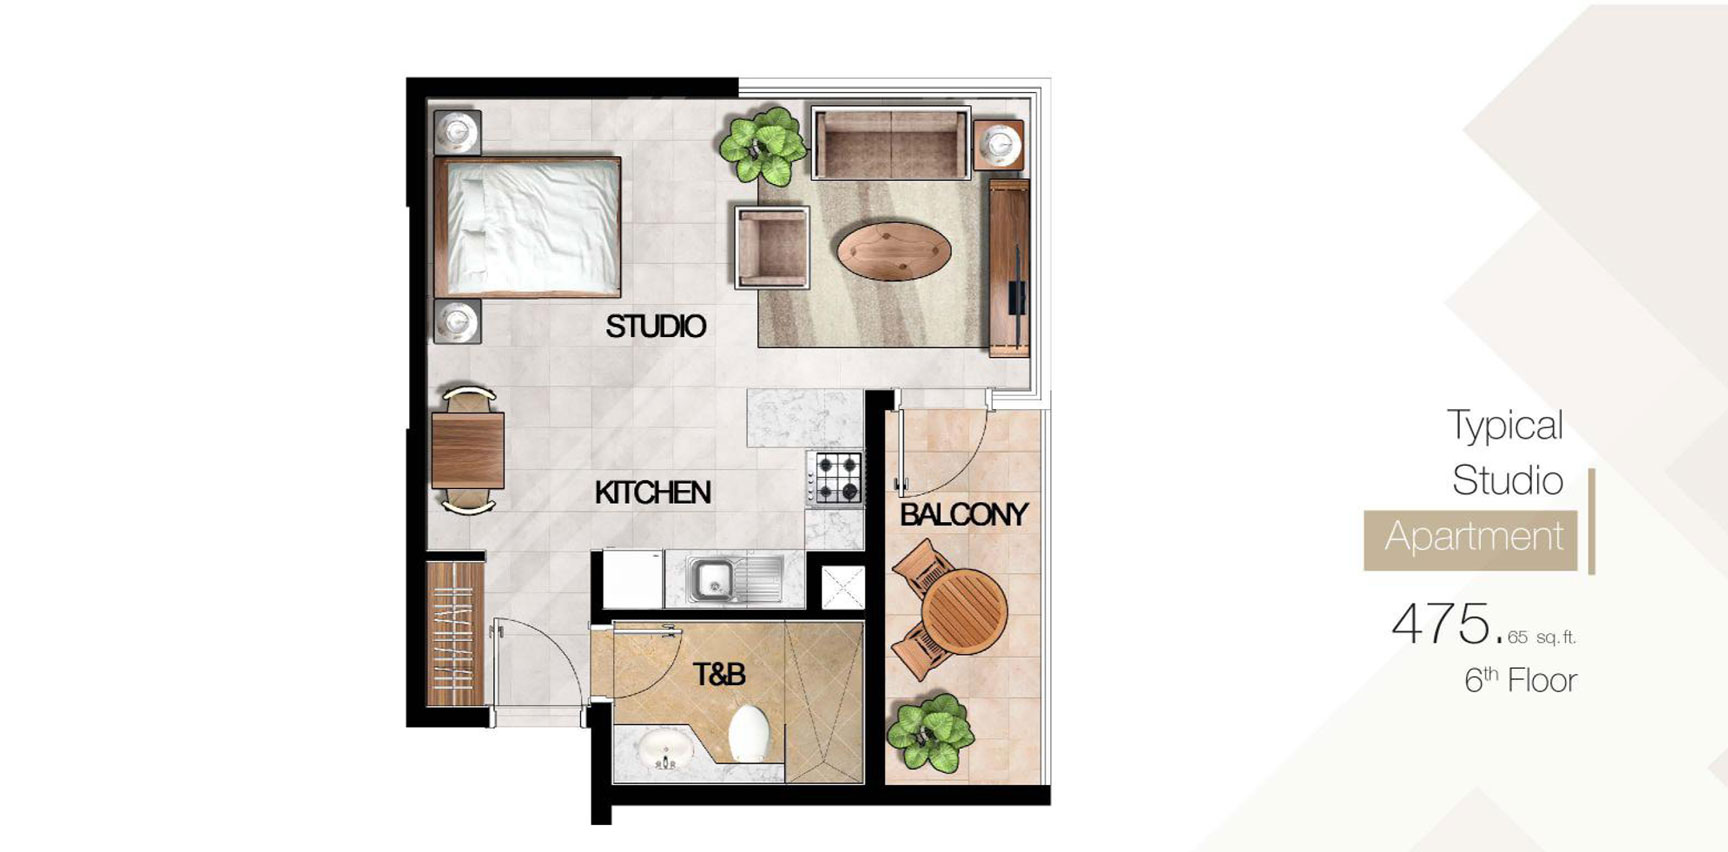 Typical Studio 6th Floor Size 475.65 sq.ft